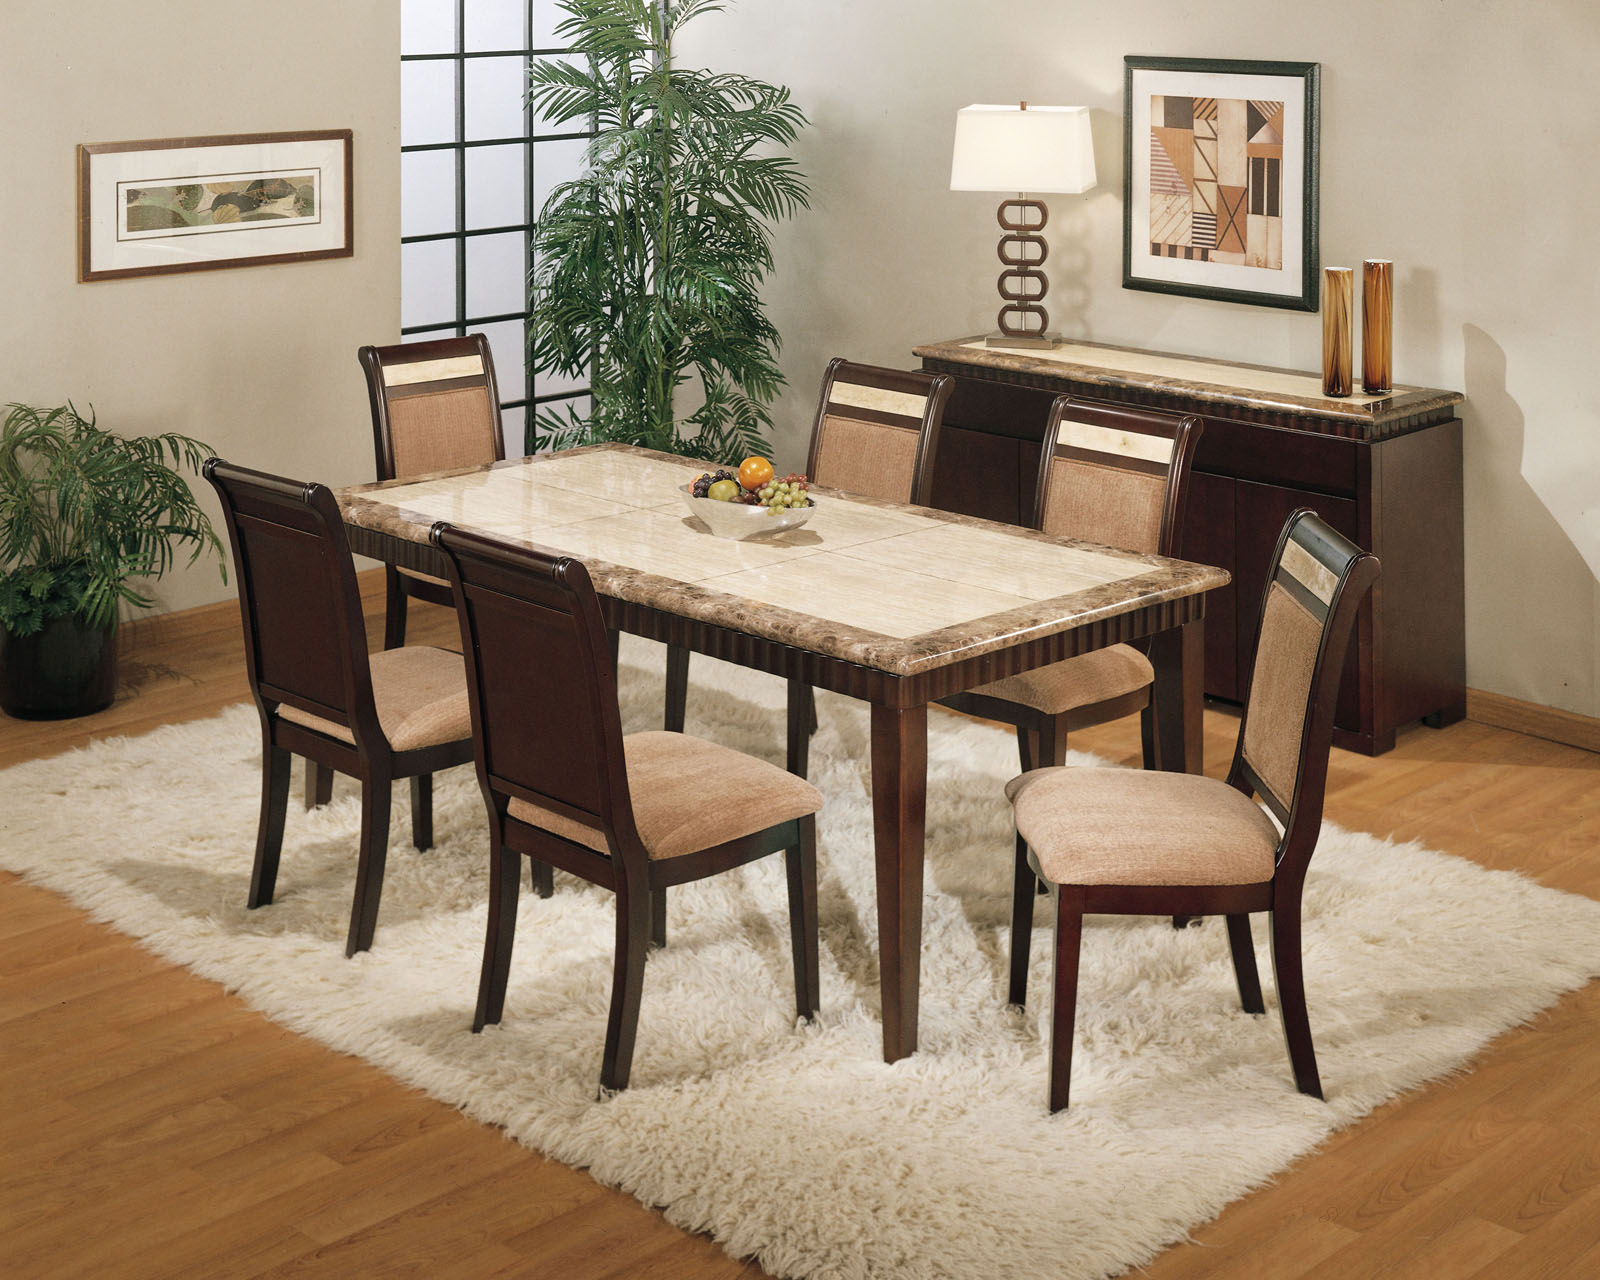 granite dining table set 2 kitchen table rugs Rectangular Granite Dining Table Set With White Fur Rug